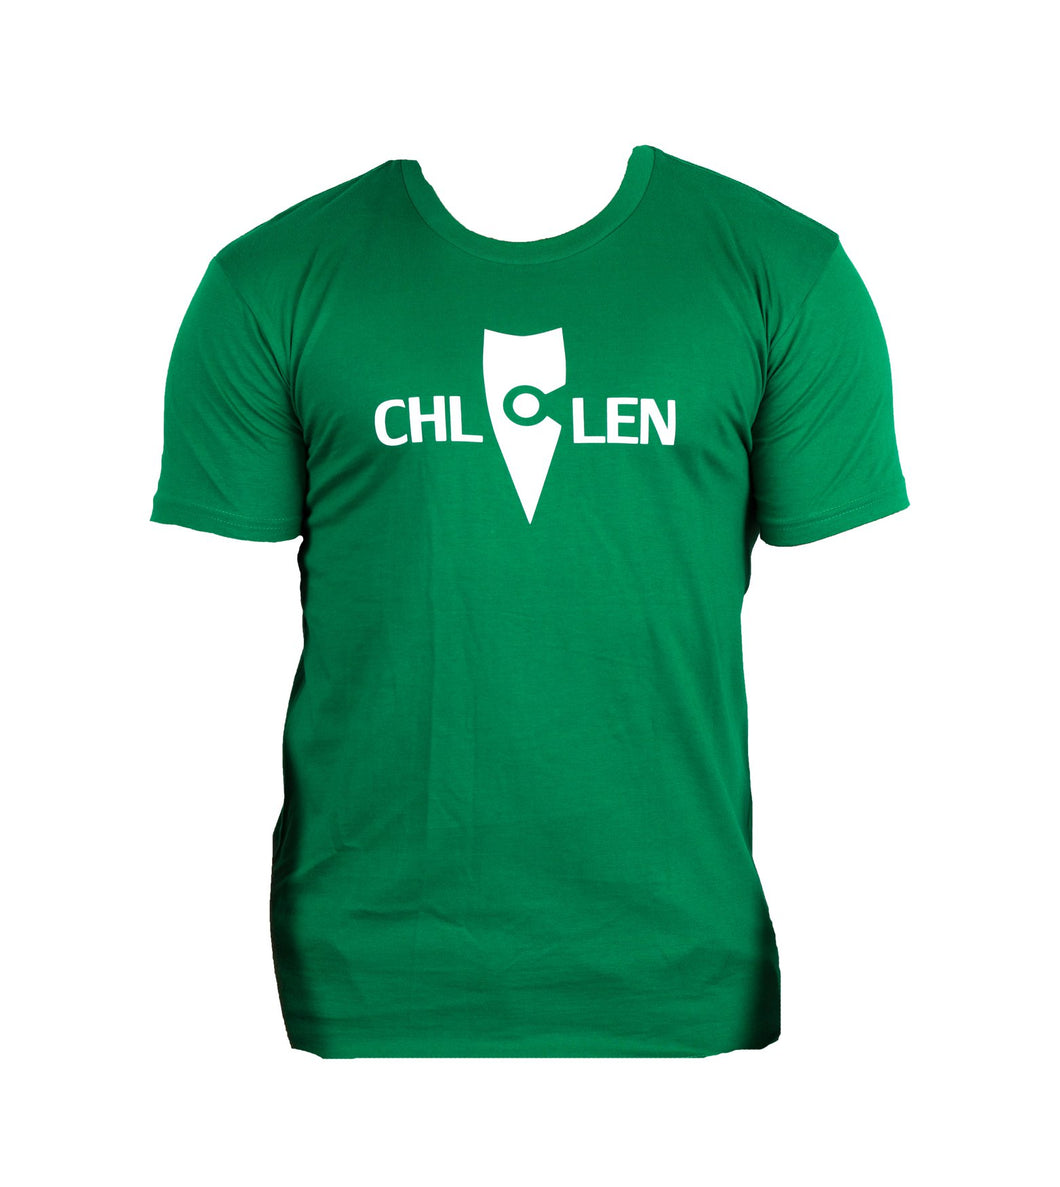 chillen chllen lifestyle wear casual green-white shirt t-shirt tee (2)